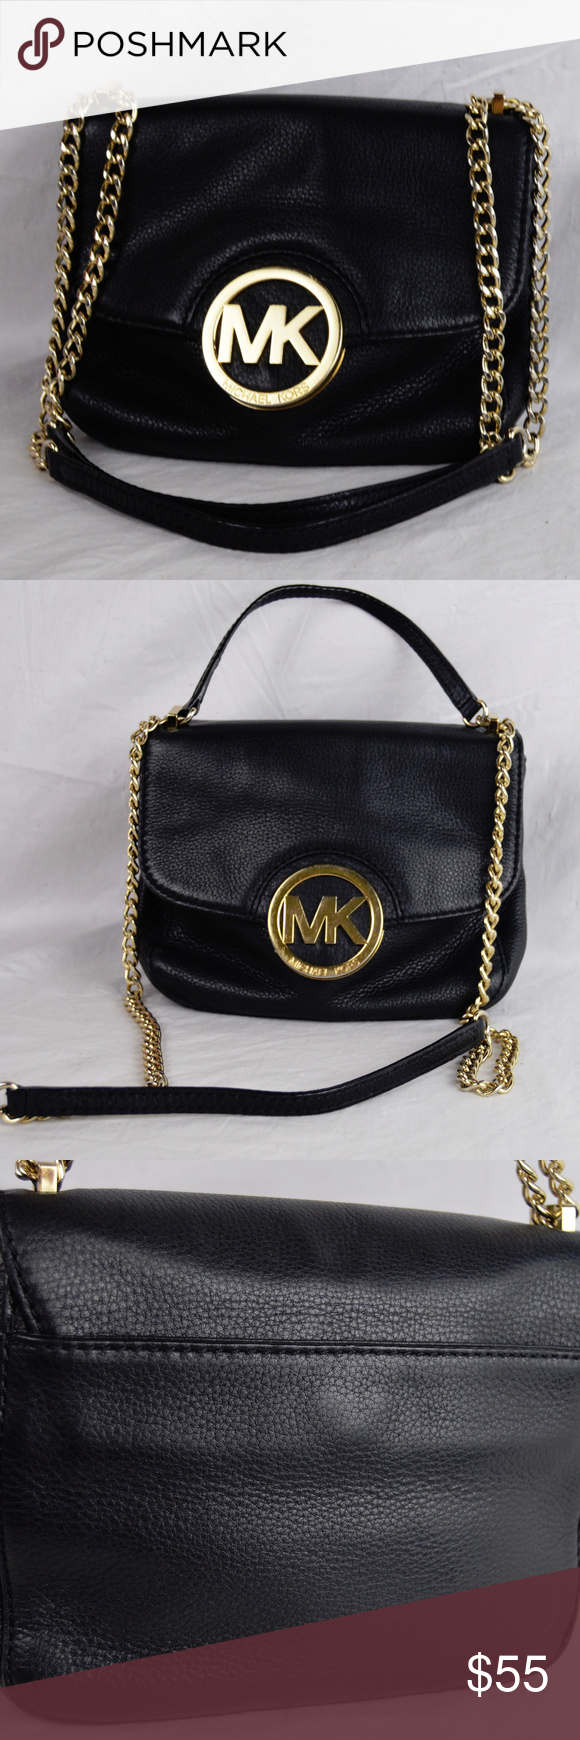 68202fe9a3bf44 Michael Kors MK 2 Way Mini Flap Bag In good condition, light wear to logo.  Can be crossbody if you are petite. Strap drop 19. Bag measures 8 x 6  Michael ...